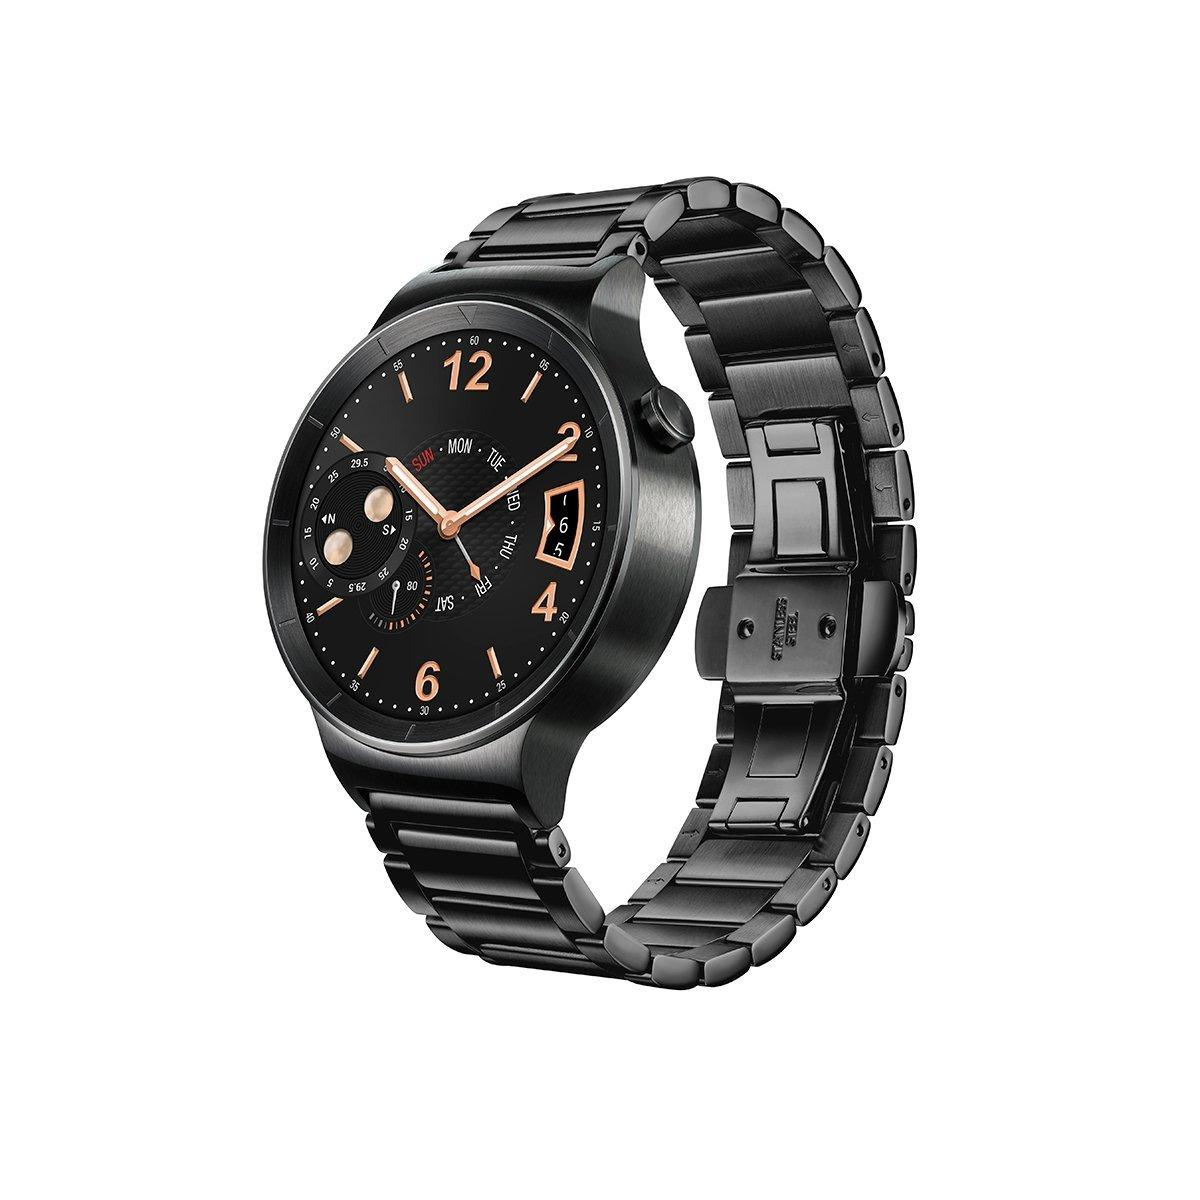 Lowest price! $319.99 Huawei Watch Black Stainless Steel with Black Stainless Steel Link Band (U.S. Warranty)